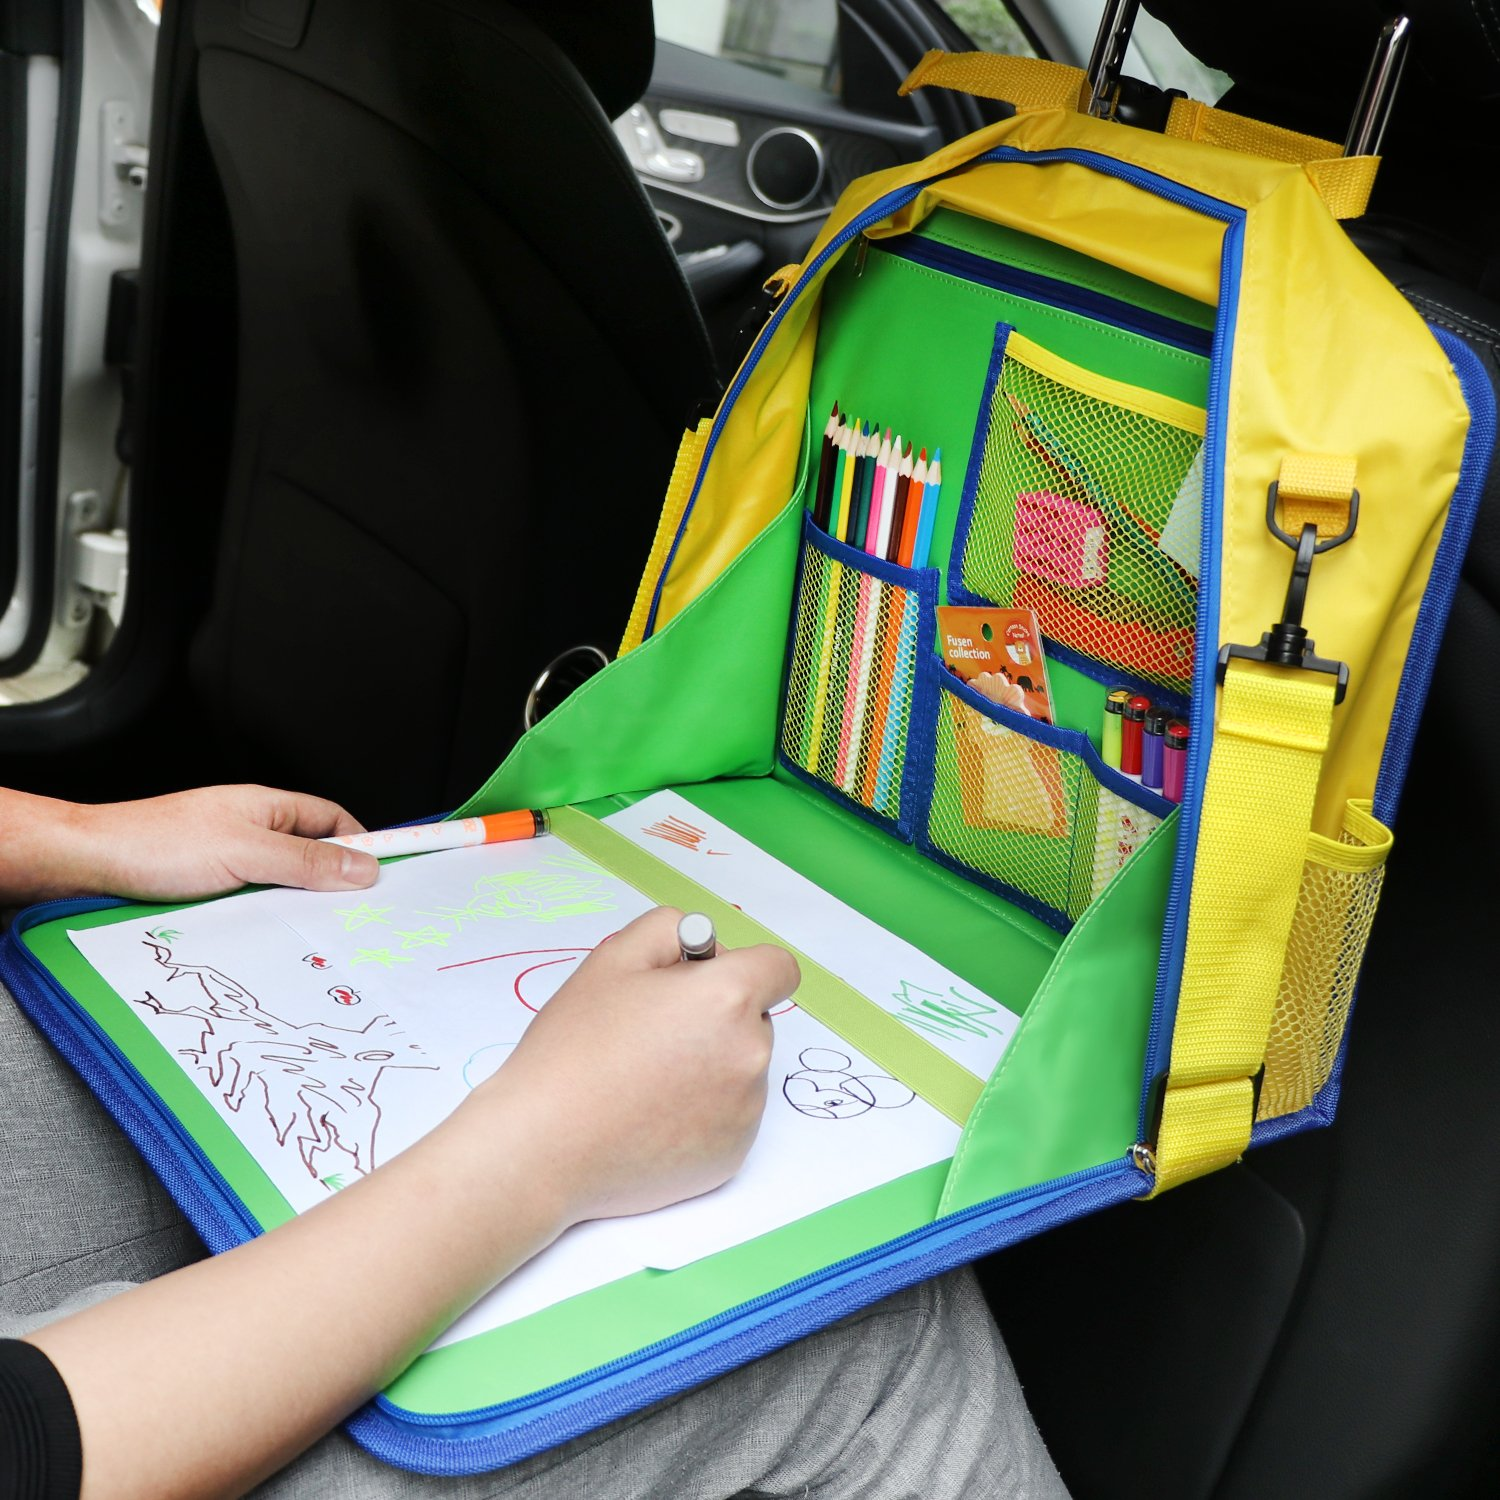 KIPTOP Backseat Car Organizer,Kids Play Tray for Snacks Car Bus Train and  Plane Journeys - ALEX Toys - Young Artist Studio Desk To Go - 507, Drawing Sets